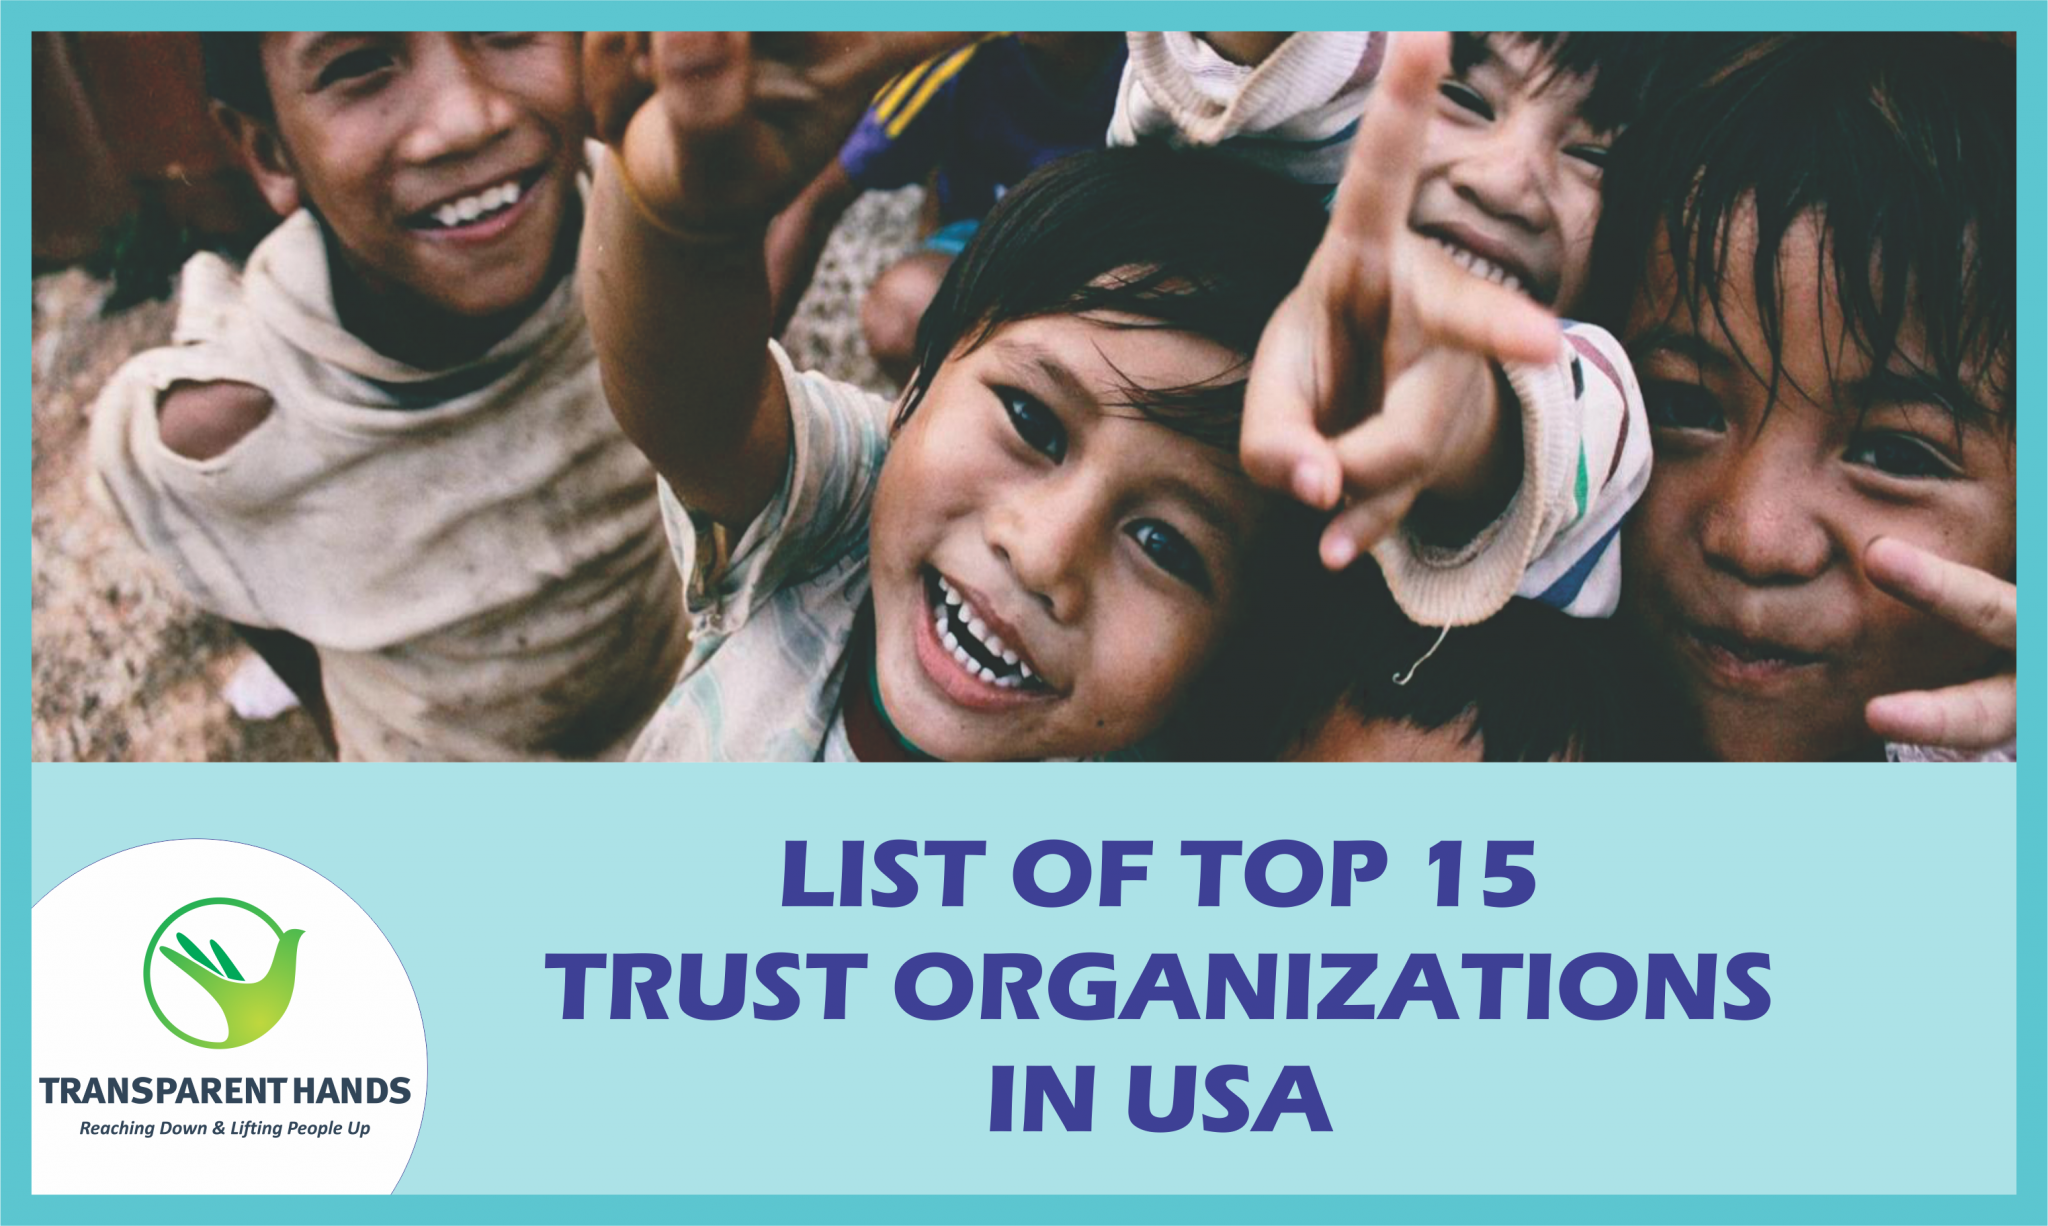 List of top 15 Trust Organizations in USA - Transparent Hands